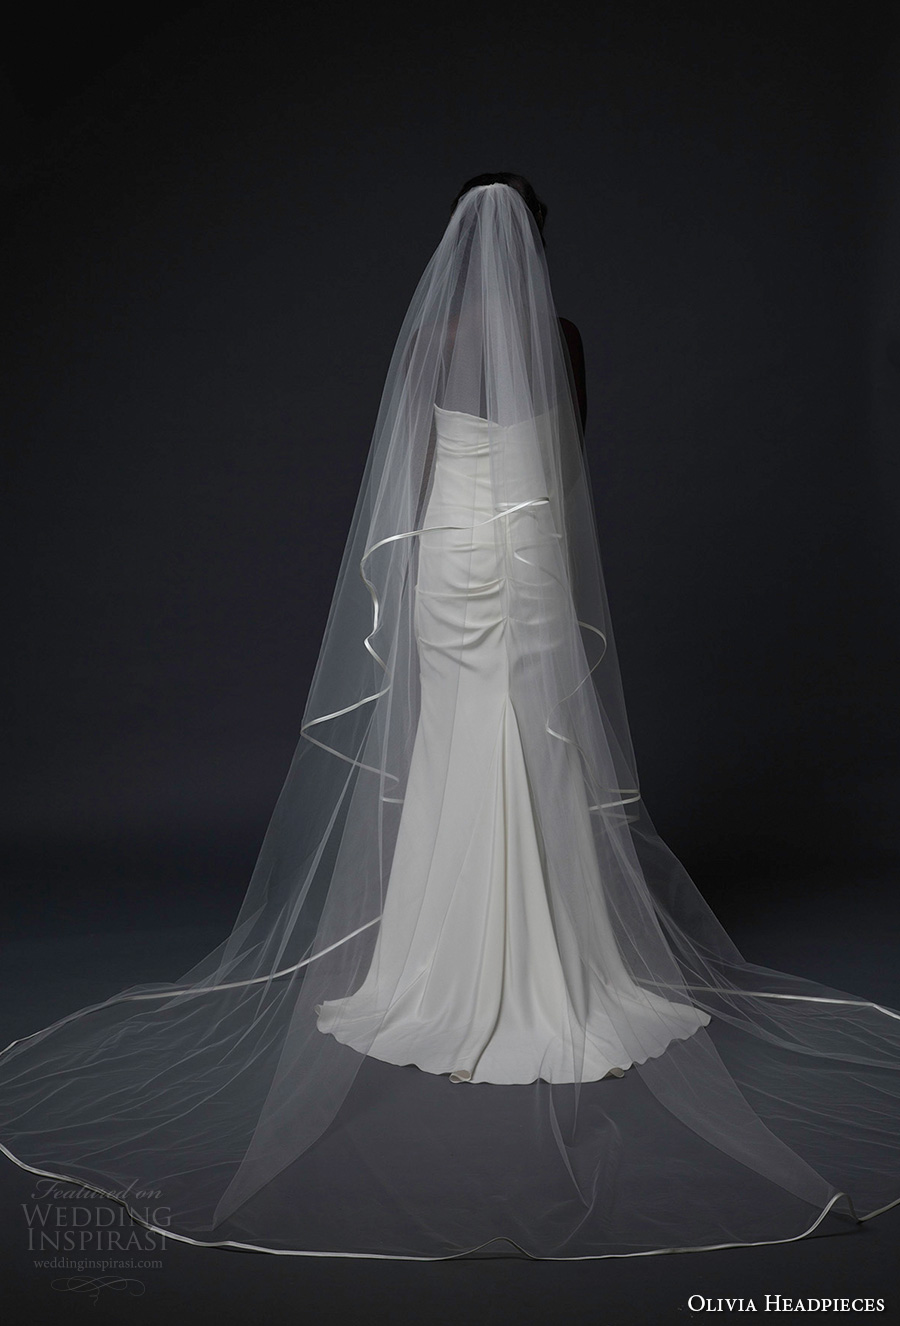 olivia headpieces fall 2016 veils single satin trim cathedral veil (covent) mv